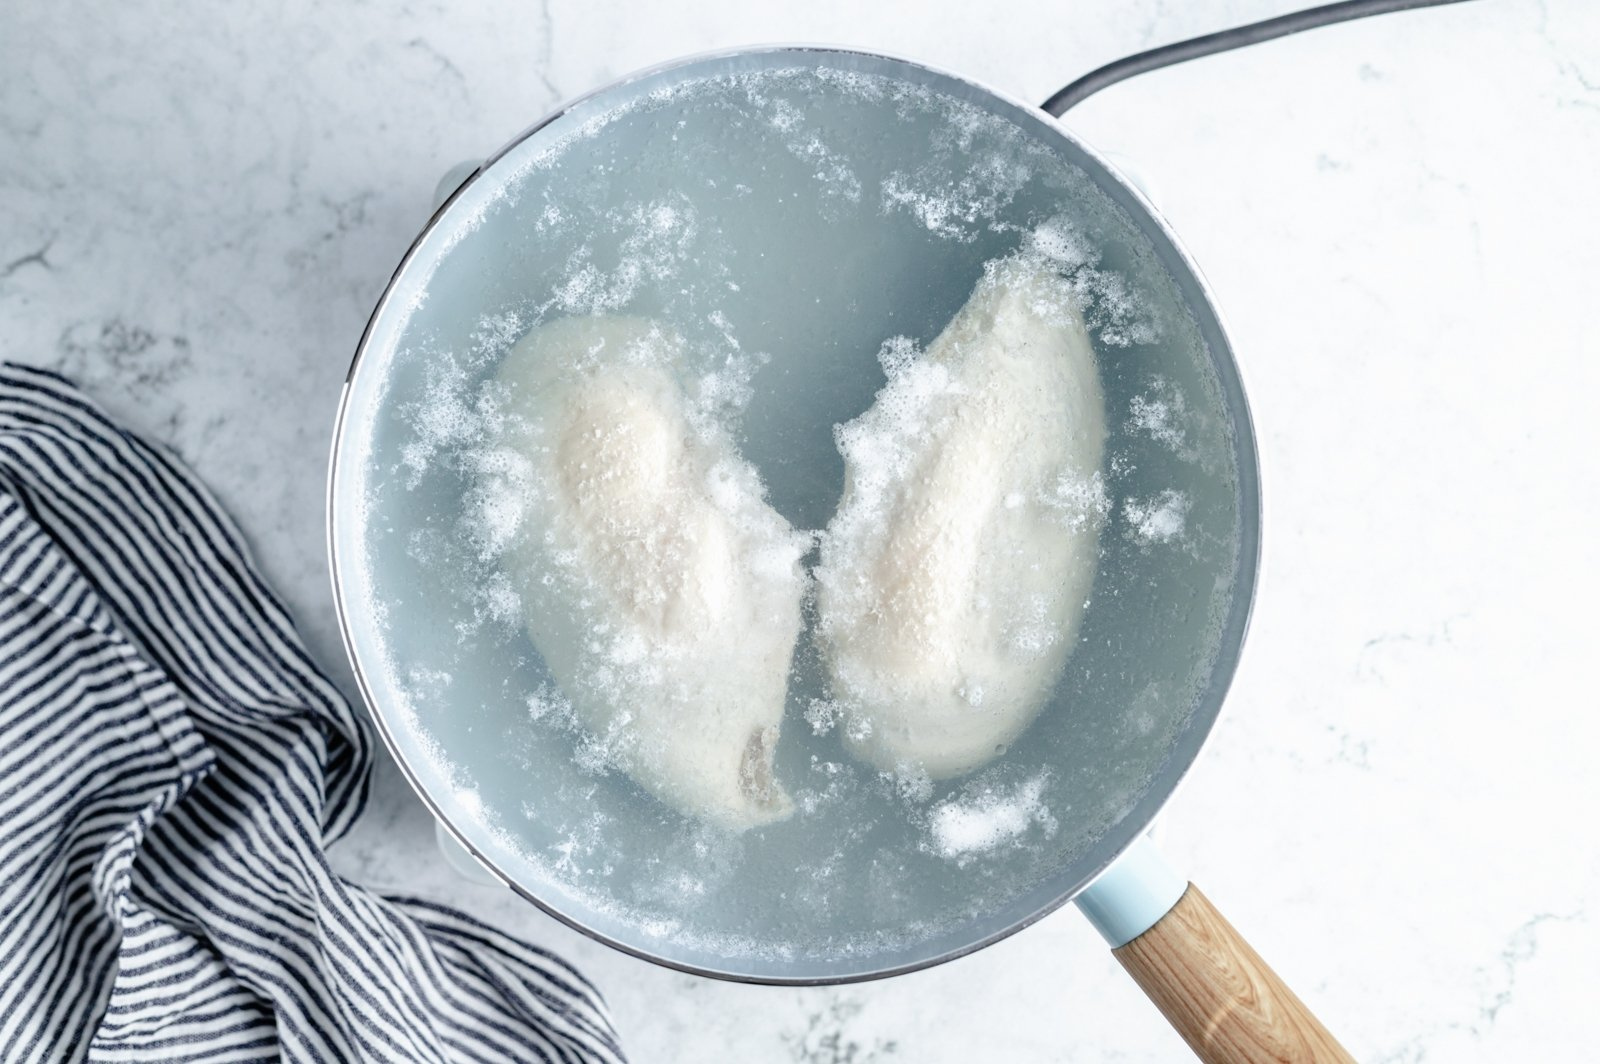 poaching two chicken breasts in a pot